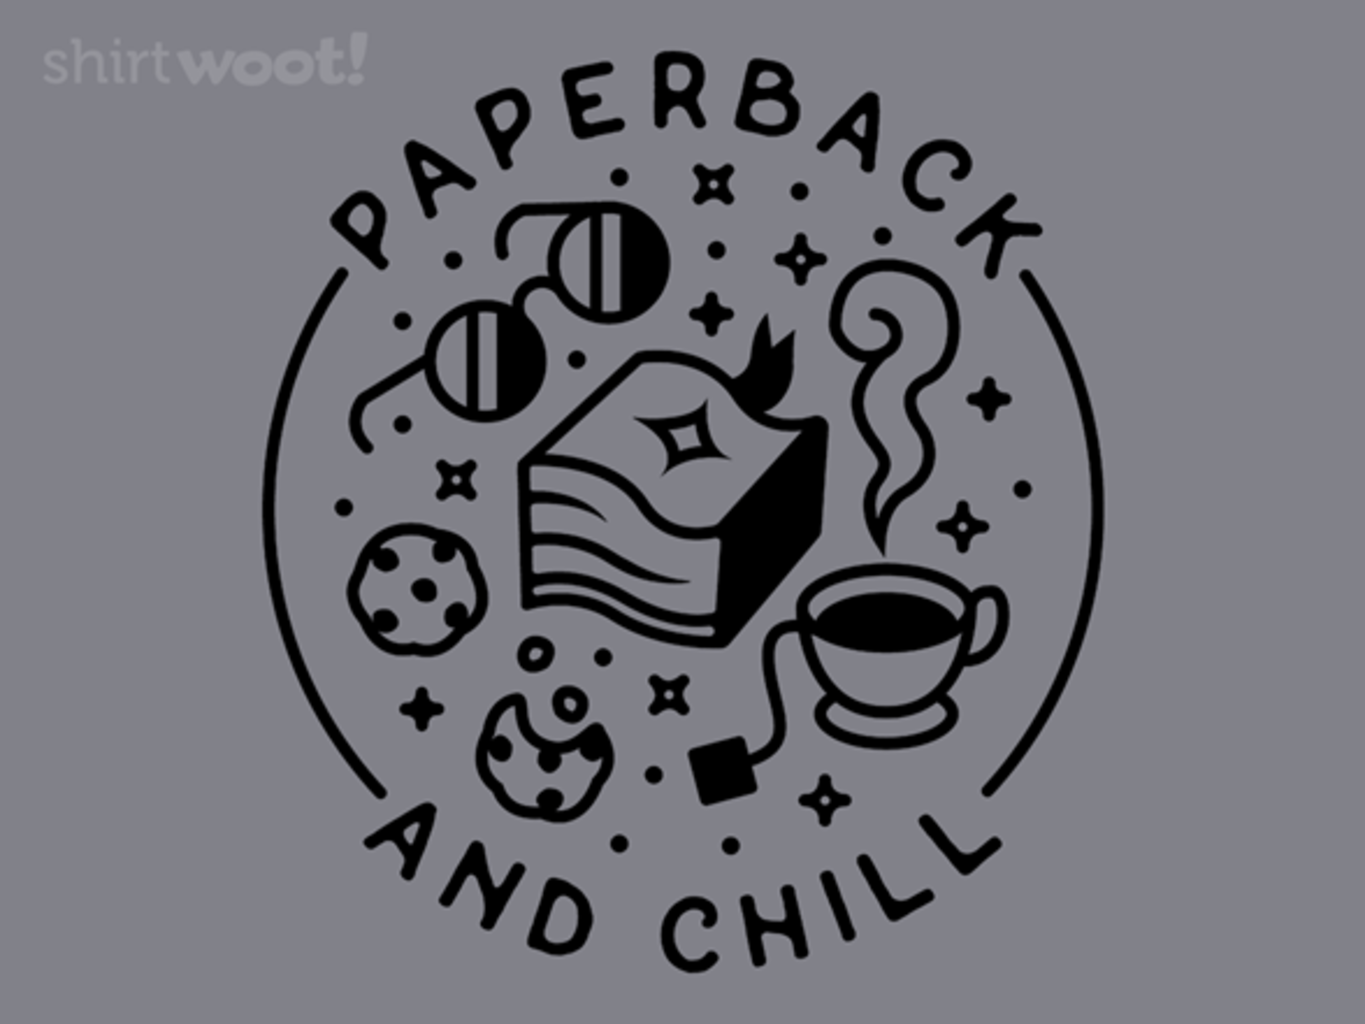 Woot!: Paperback and Chill